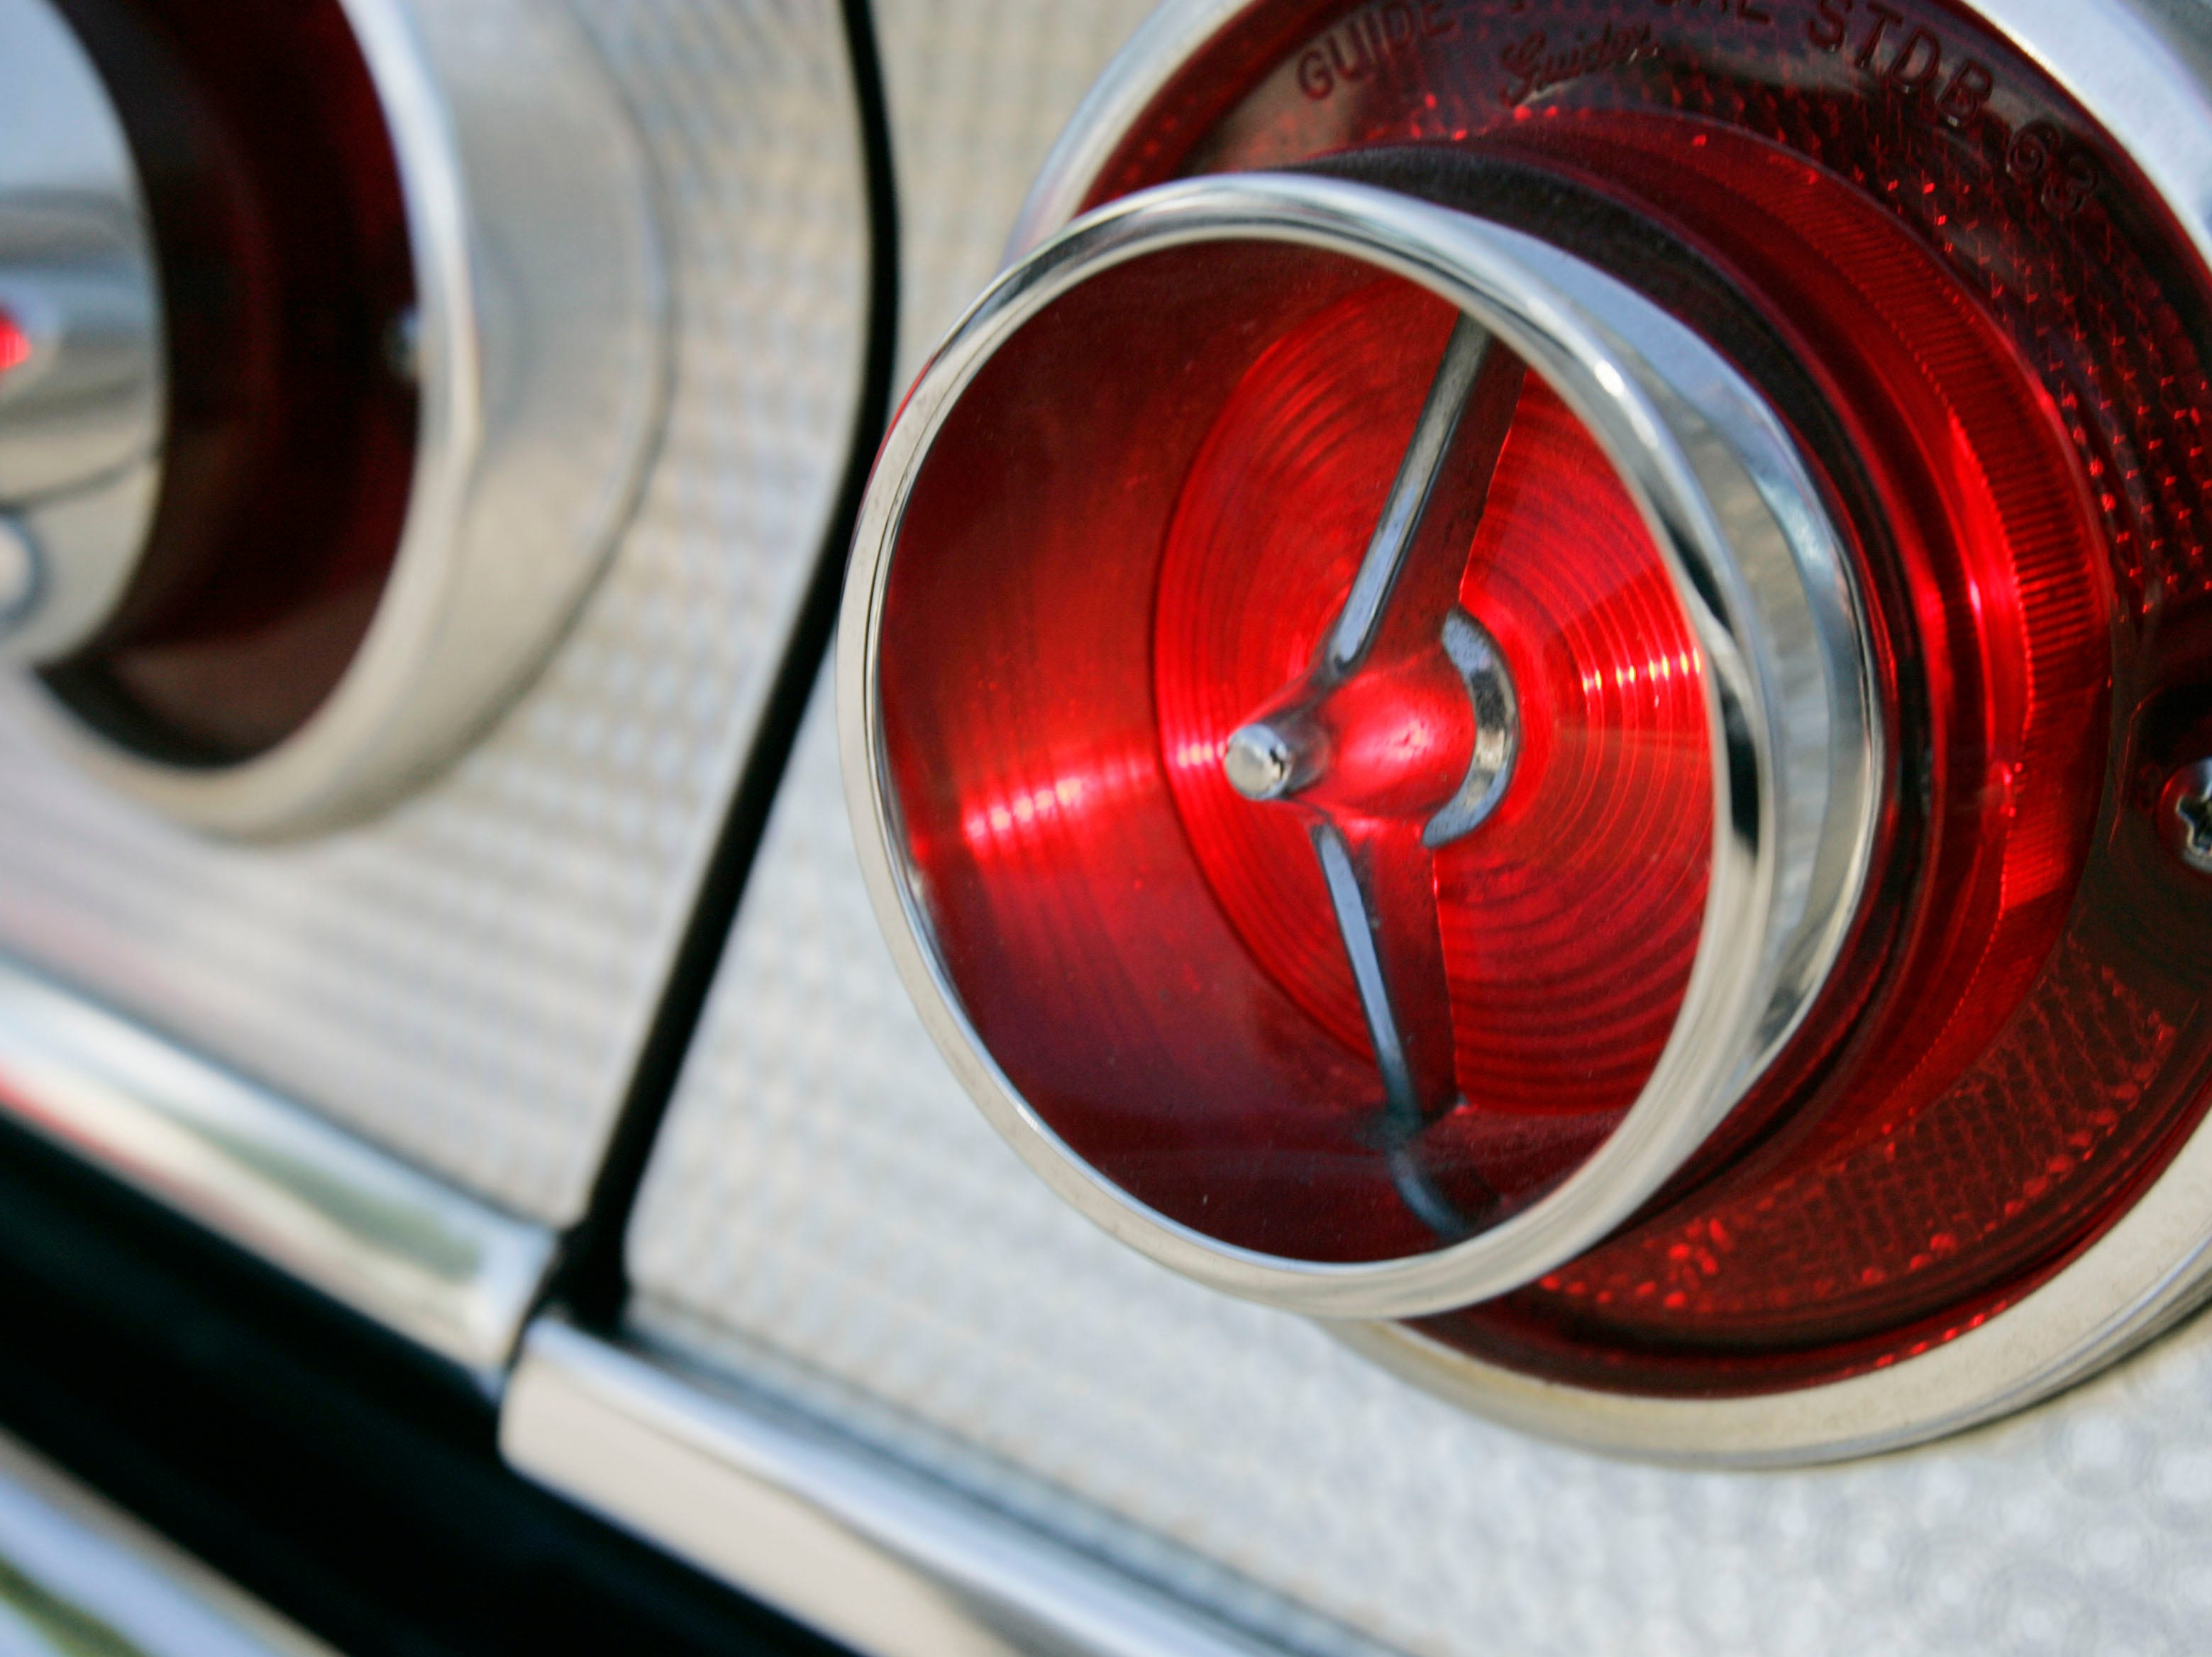 The tail light of a 1963 Impala SS cruising down Woodward during the Dream Cruise, Aug. 16, 2008.